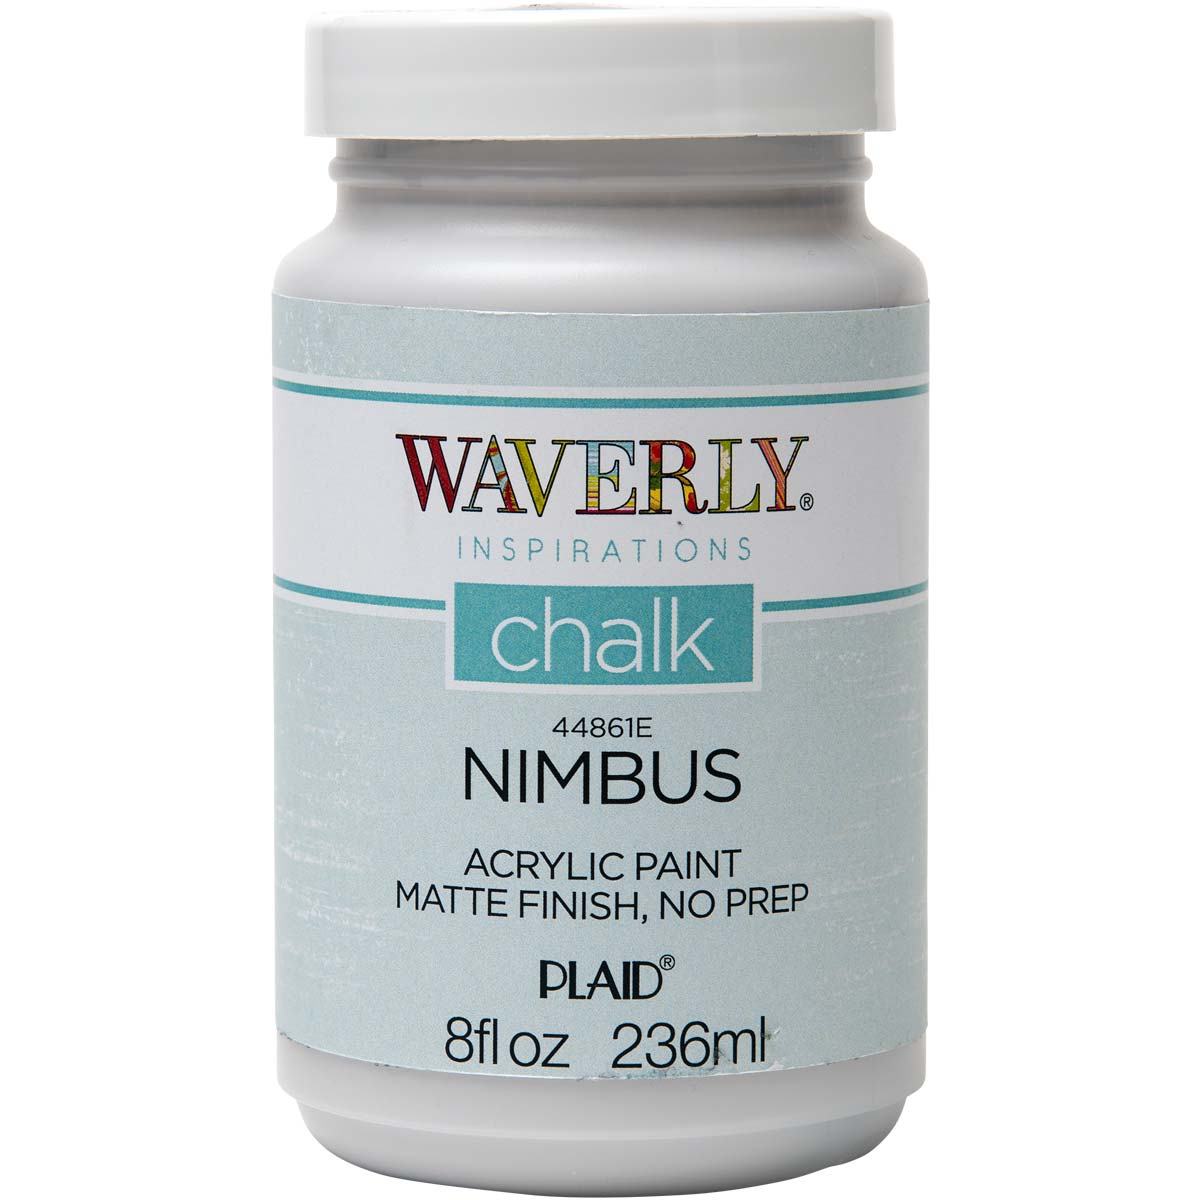 Waverly ® Inspirations Chalk Finish Acrylic Paint - Nimbus, 8 oz.